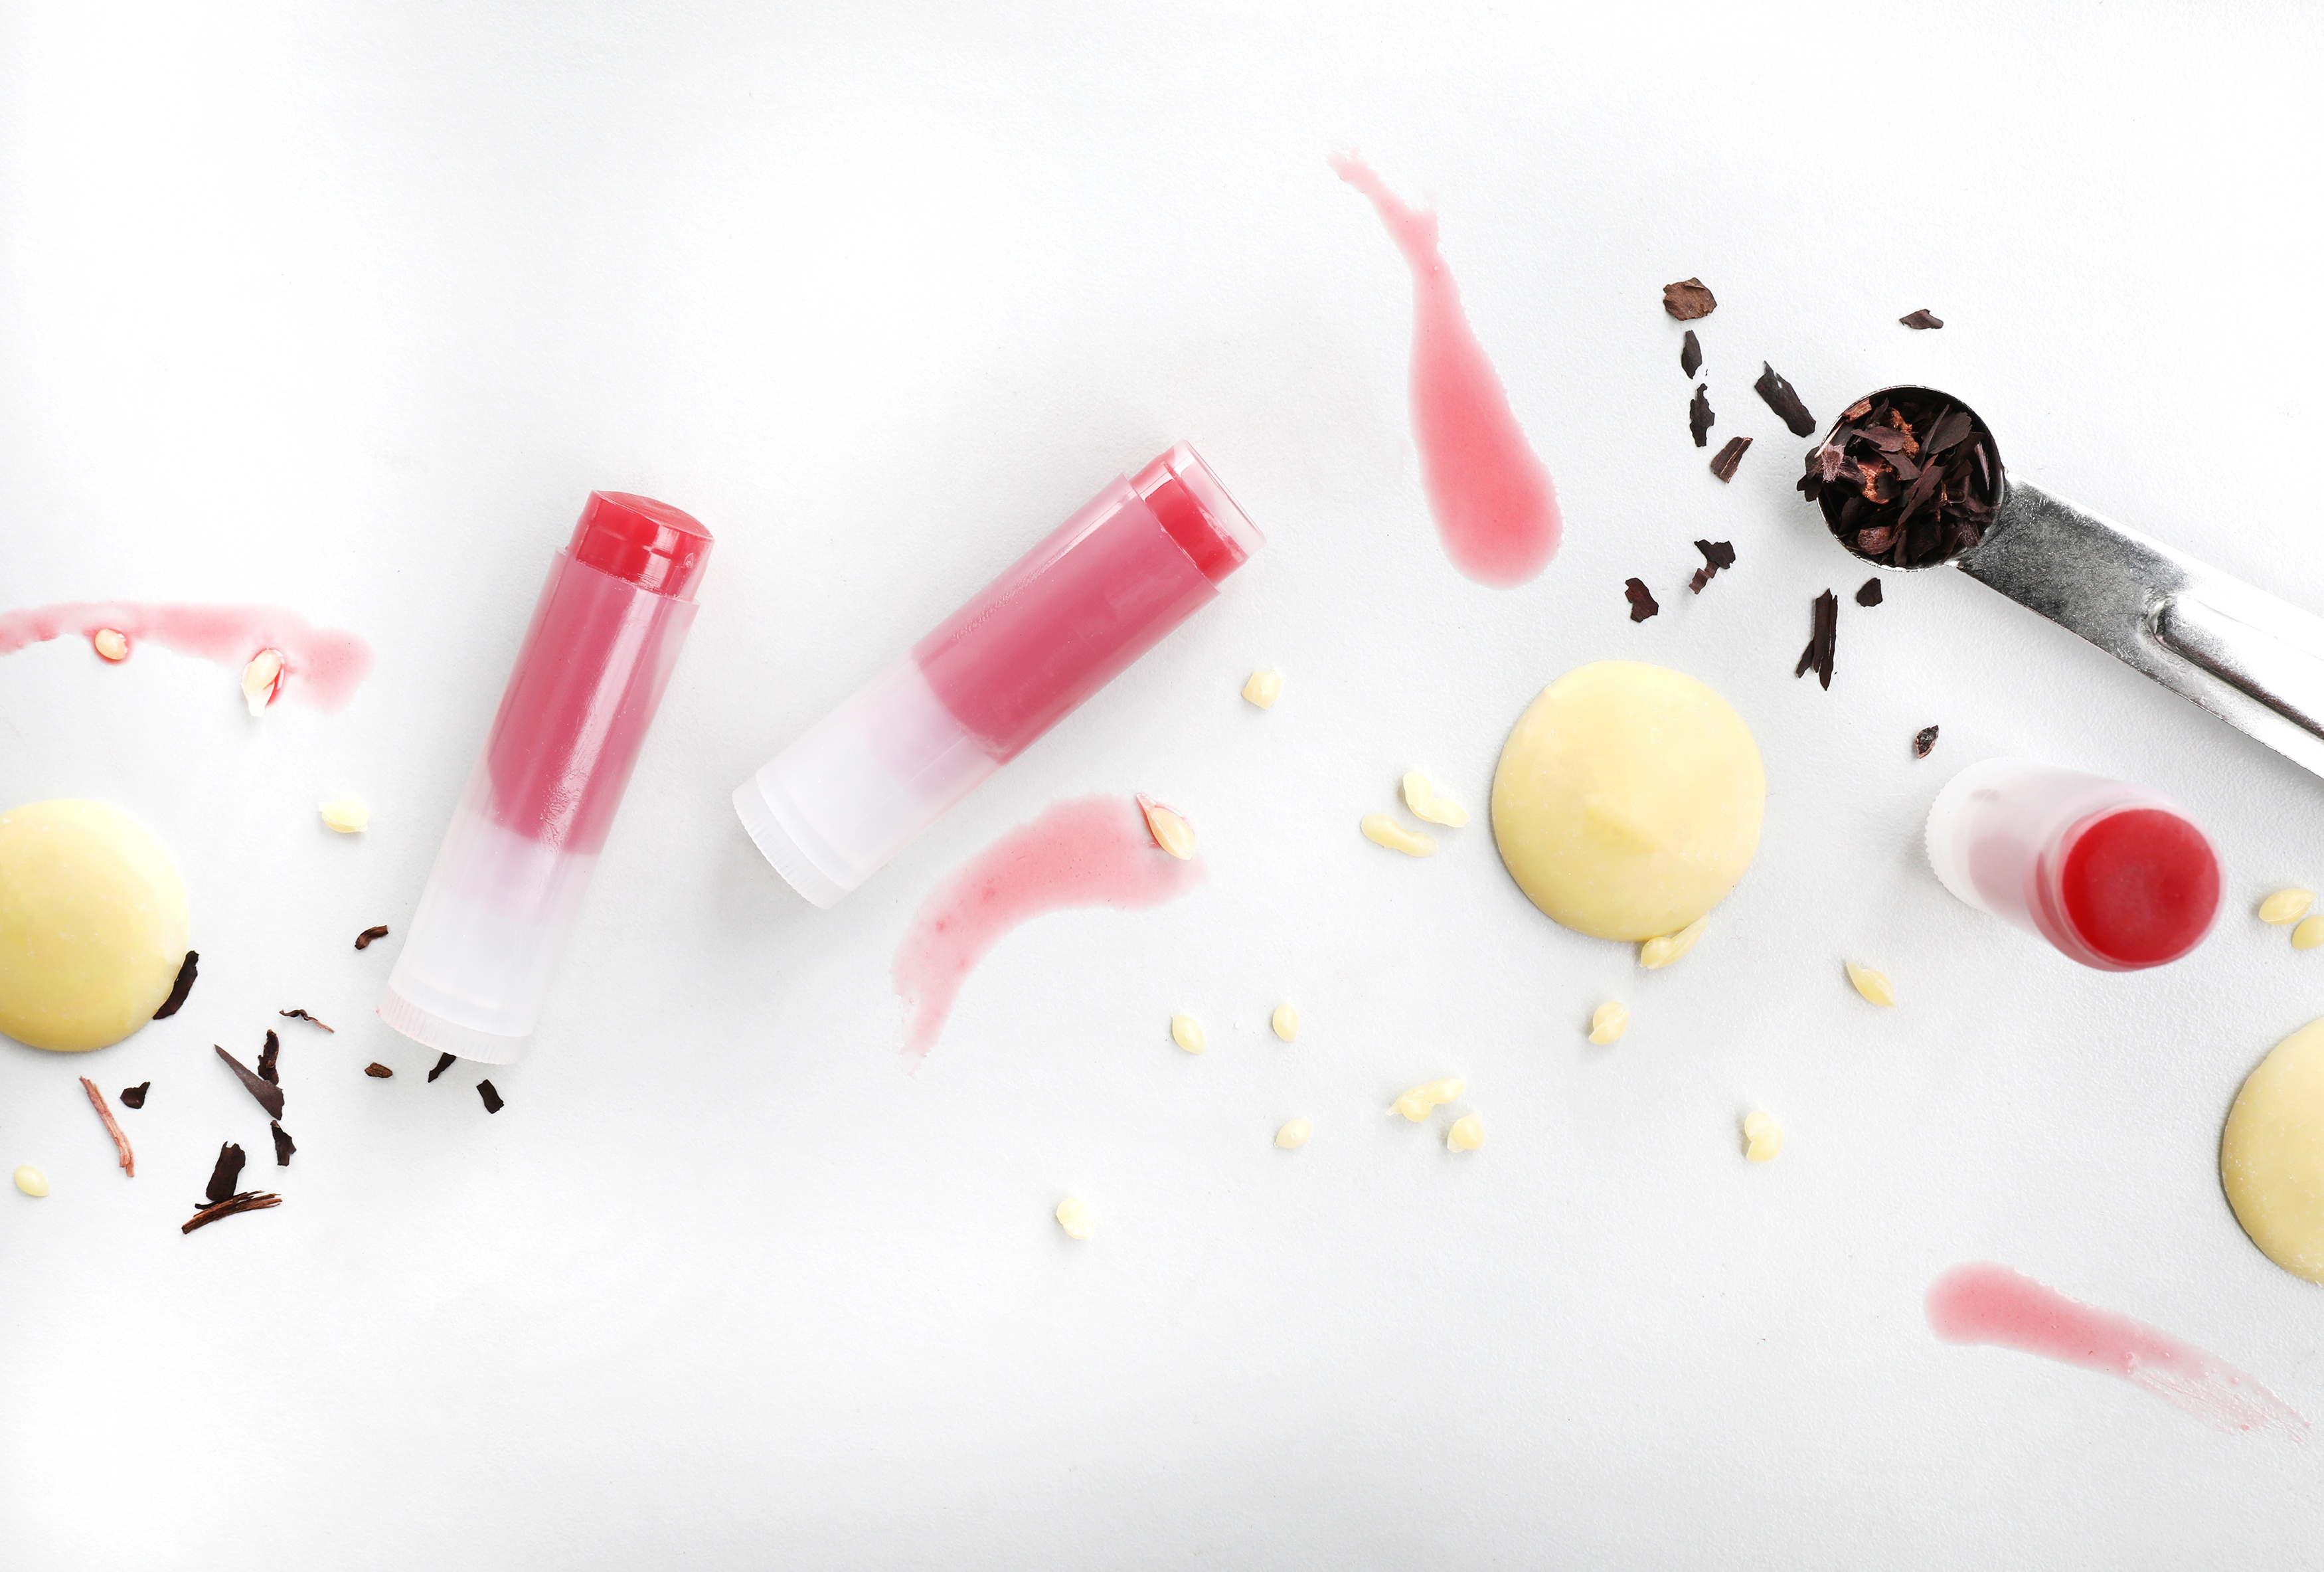 Bright pink and red lip balm tubes laying out on counter with butter and beet root pieces